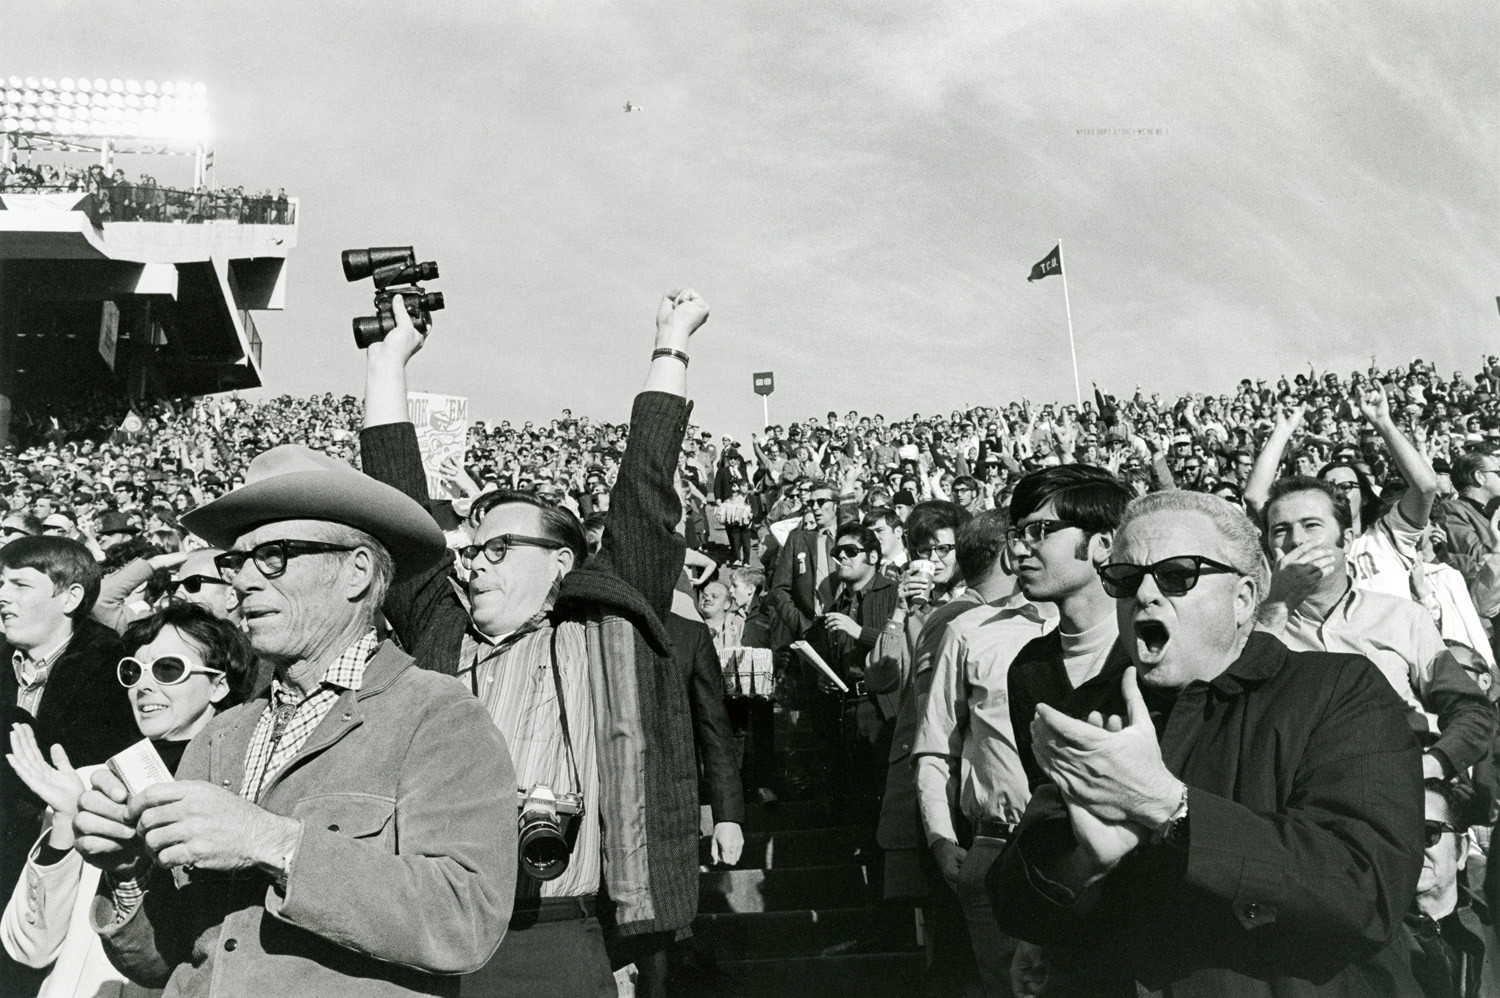 Tod Papageorge, Cotton Bowl (Notre Dame vs. Texas), Cotton Bowl Stadium, Dallas, January 1, 1971